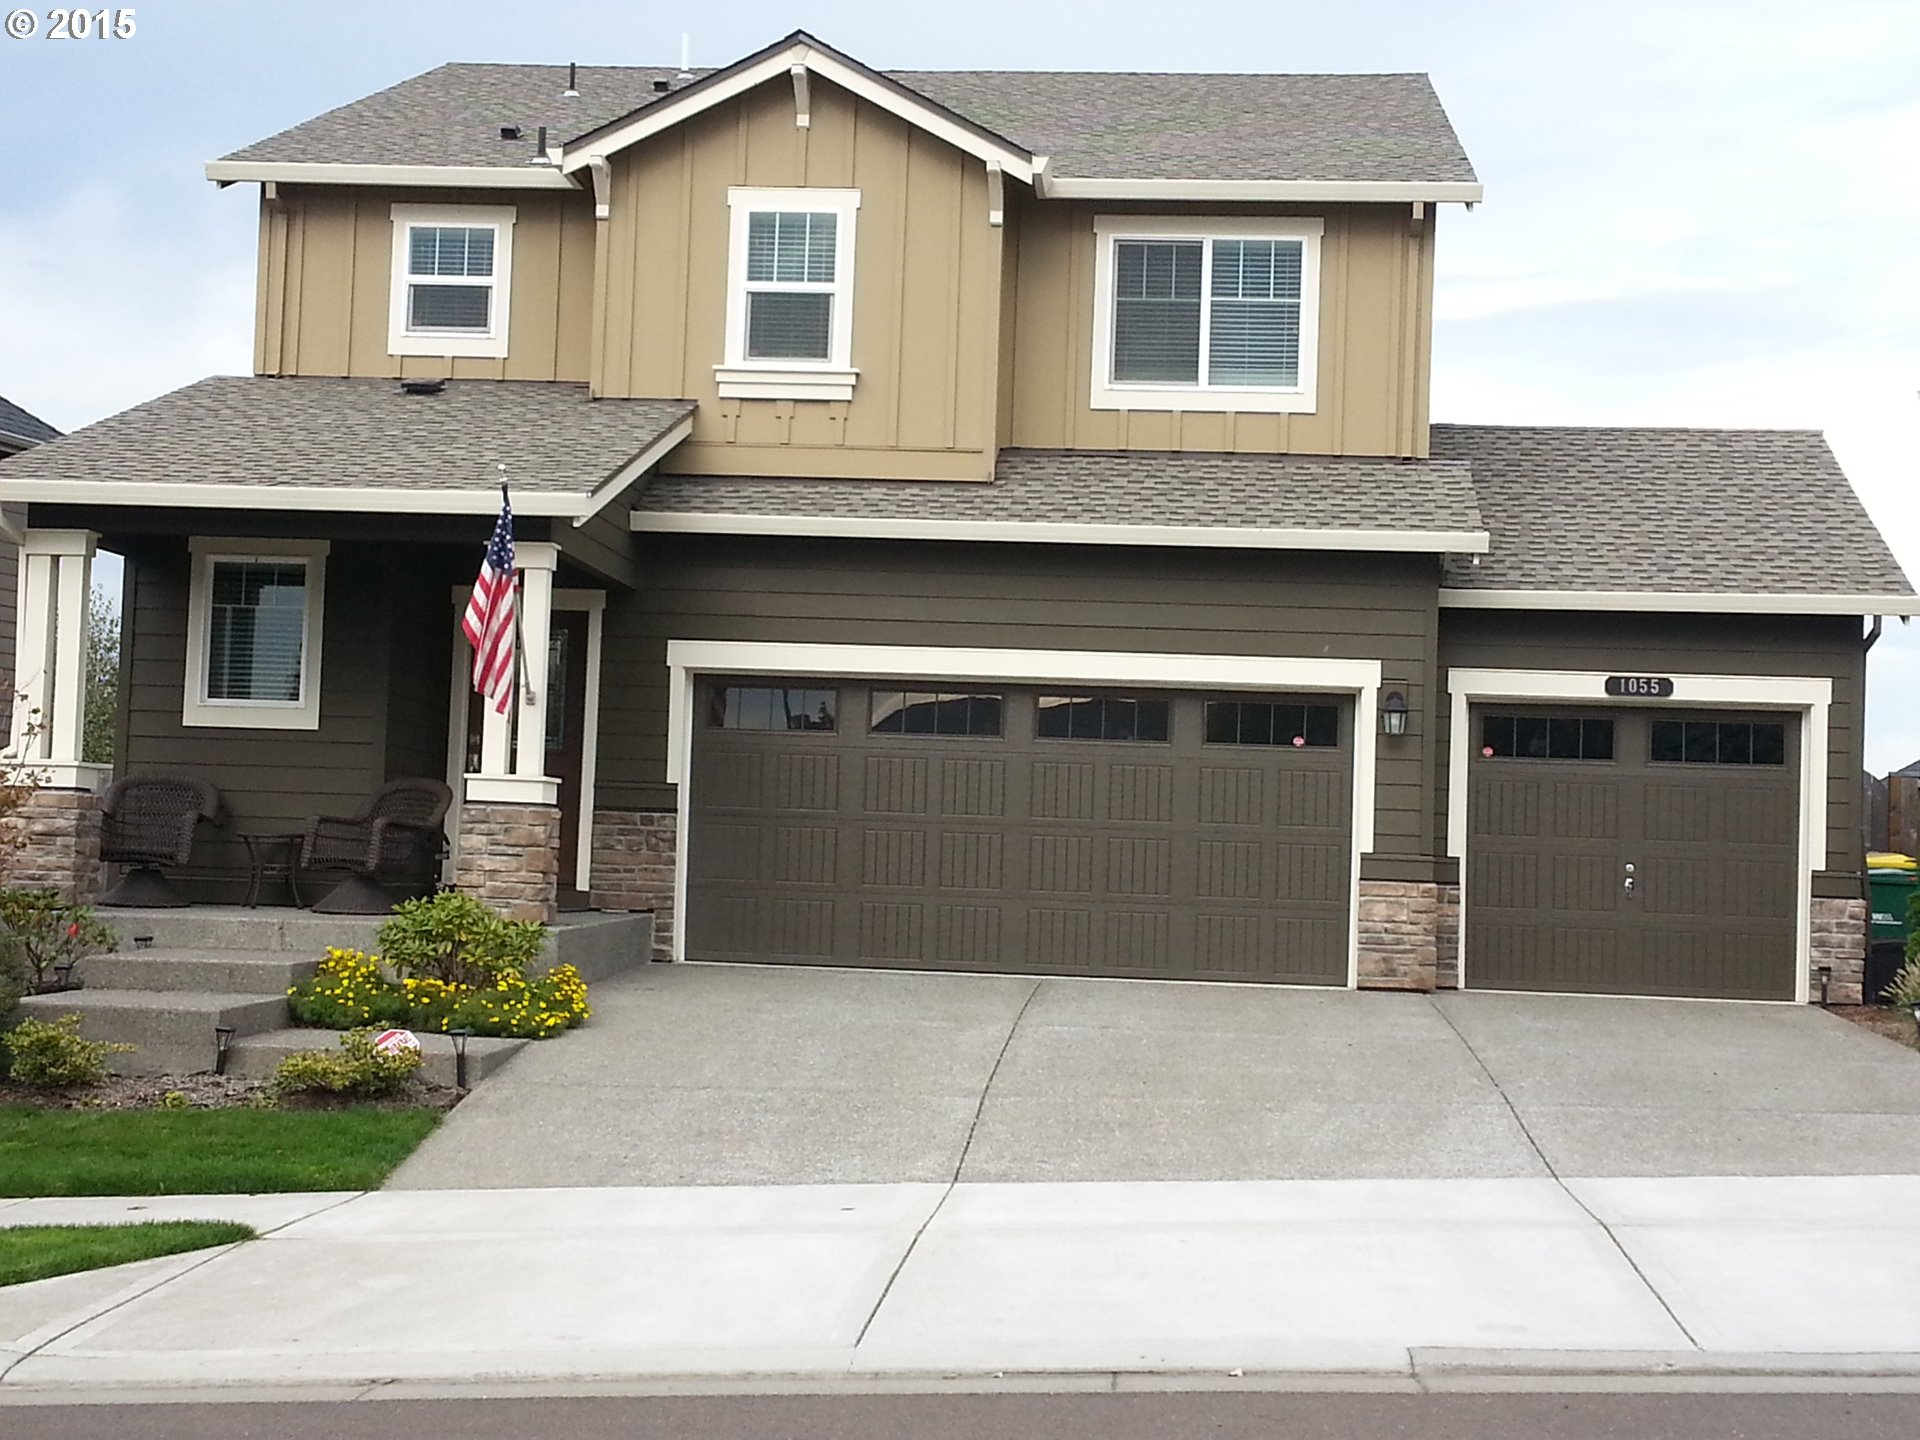 1055 Goff Rd, Forest Grove, OR